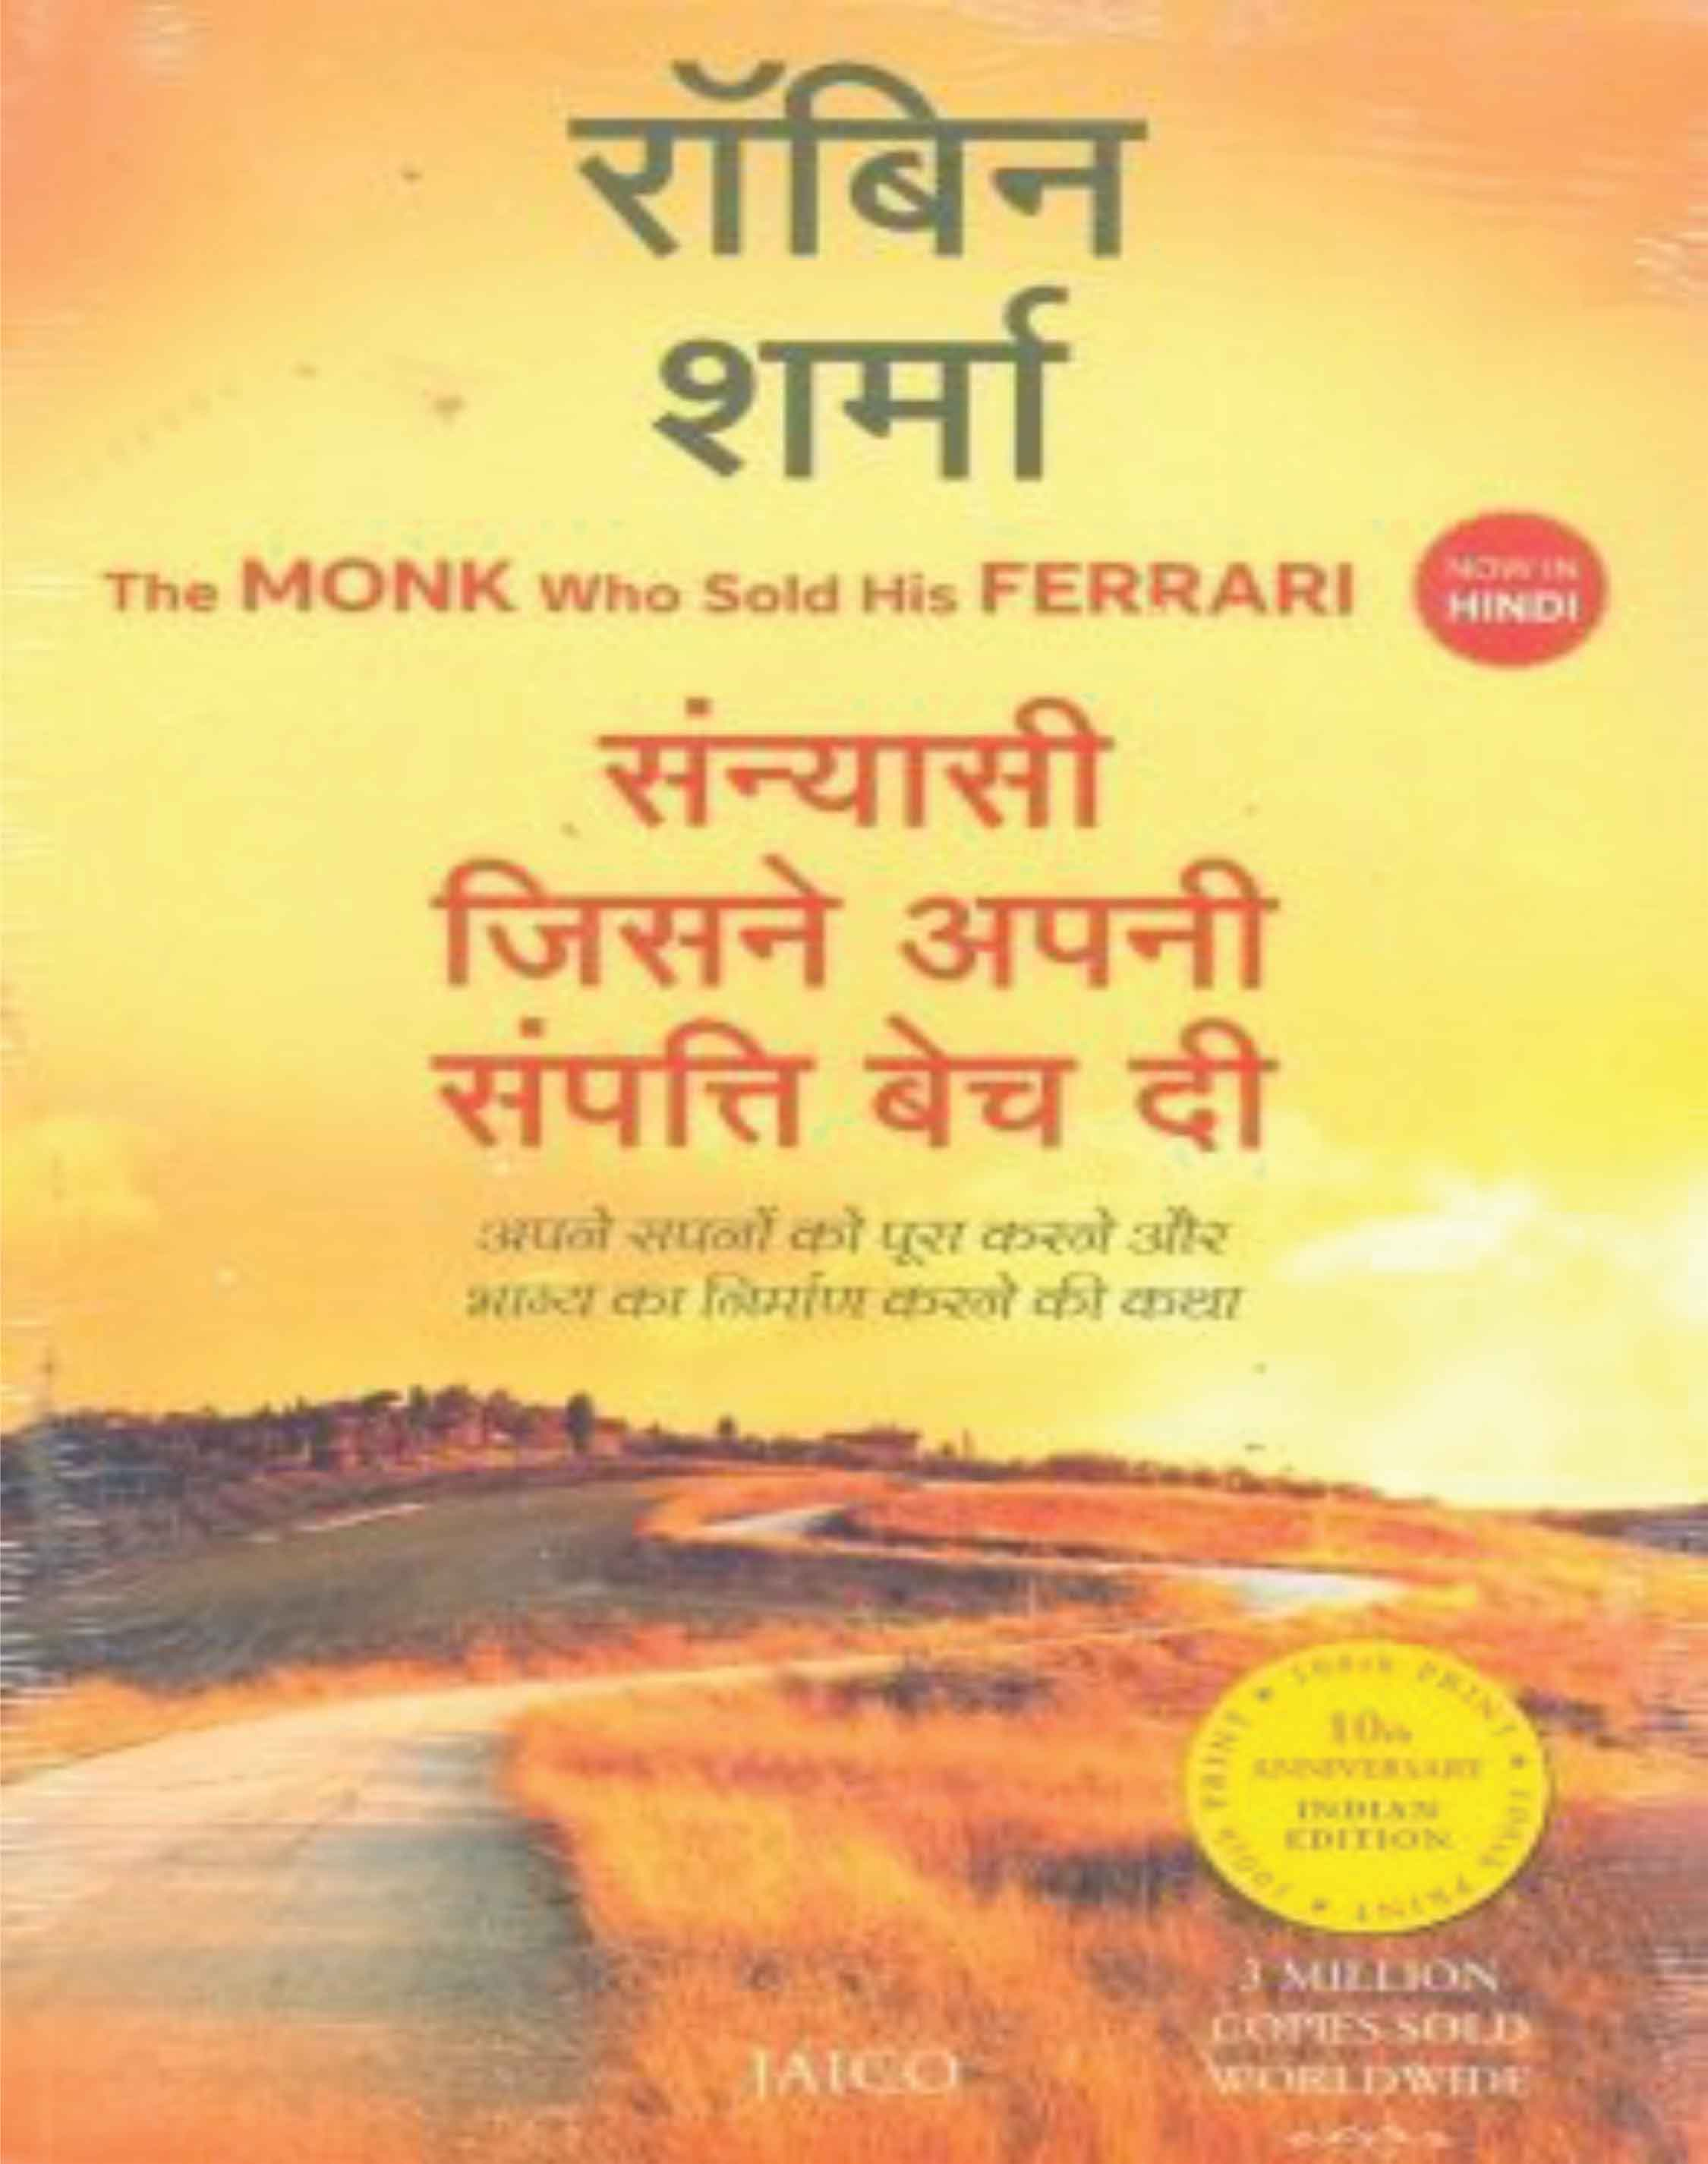 book 3 - The Monk Who Sold His Ferrari